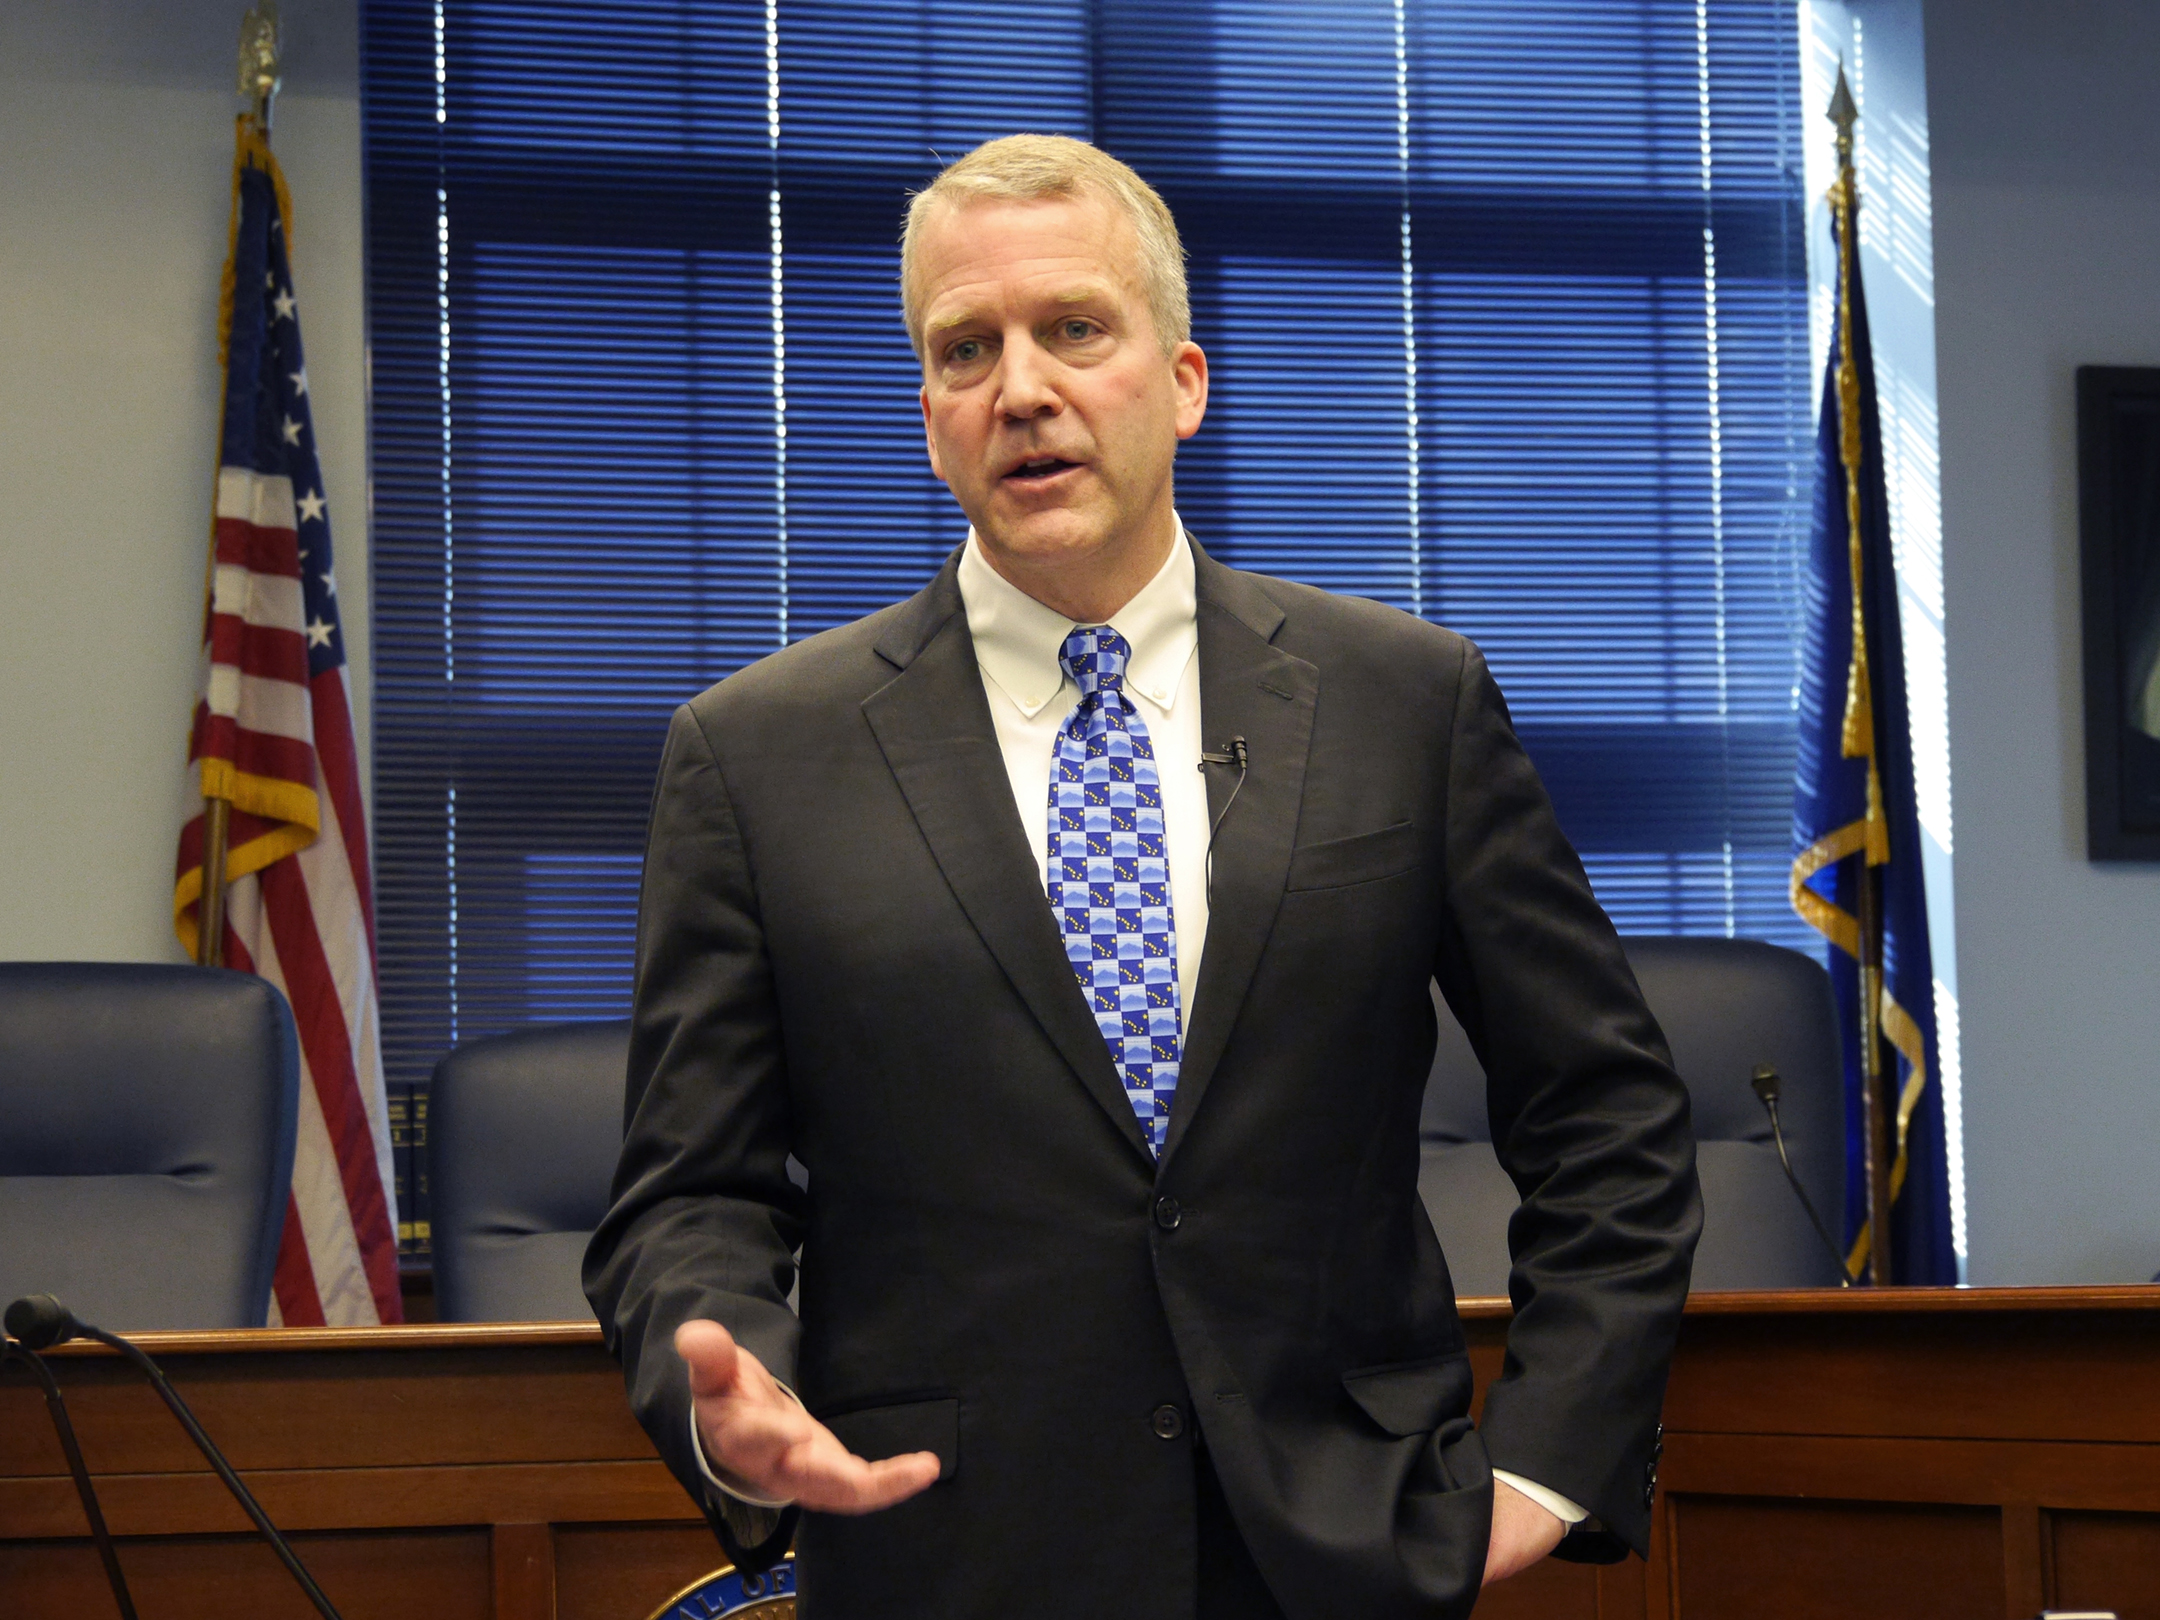 U.S. Sen. Dan Sullivan talks to reporters after his annual address to the Alaska Legislature. (File photo by Skip Gray/360 North)